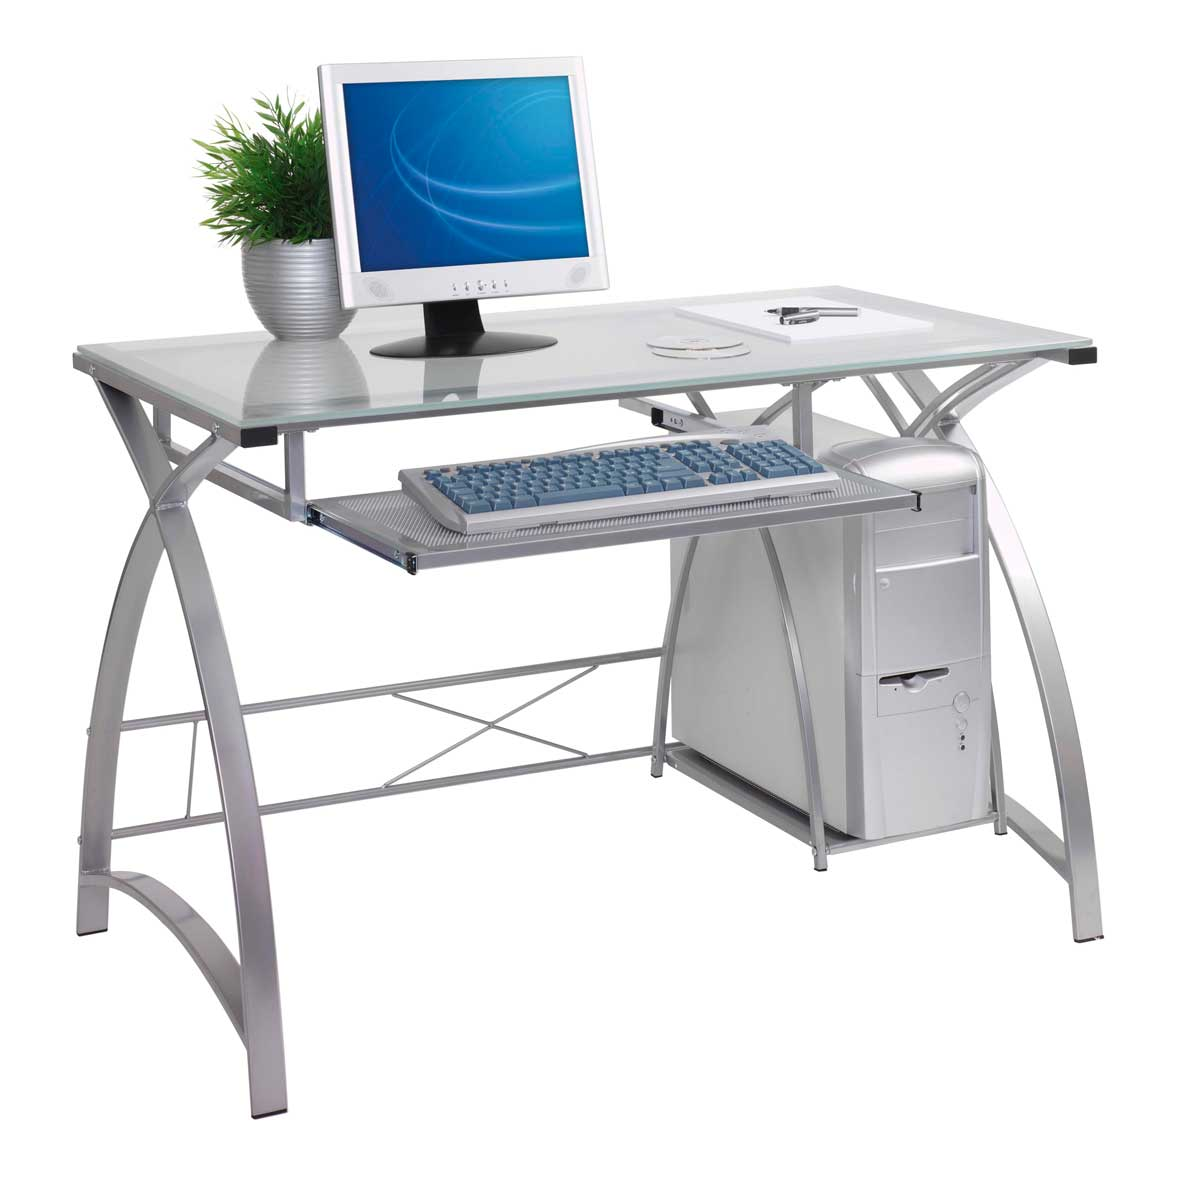 Top 10 best computer desks of 2017 reviews pei magazine - Best computer table design for home ...